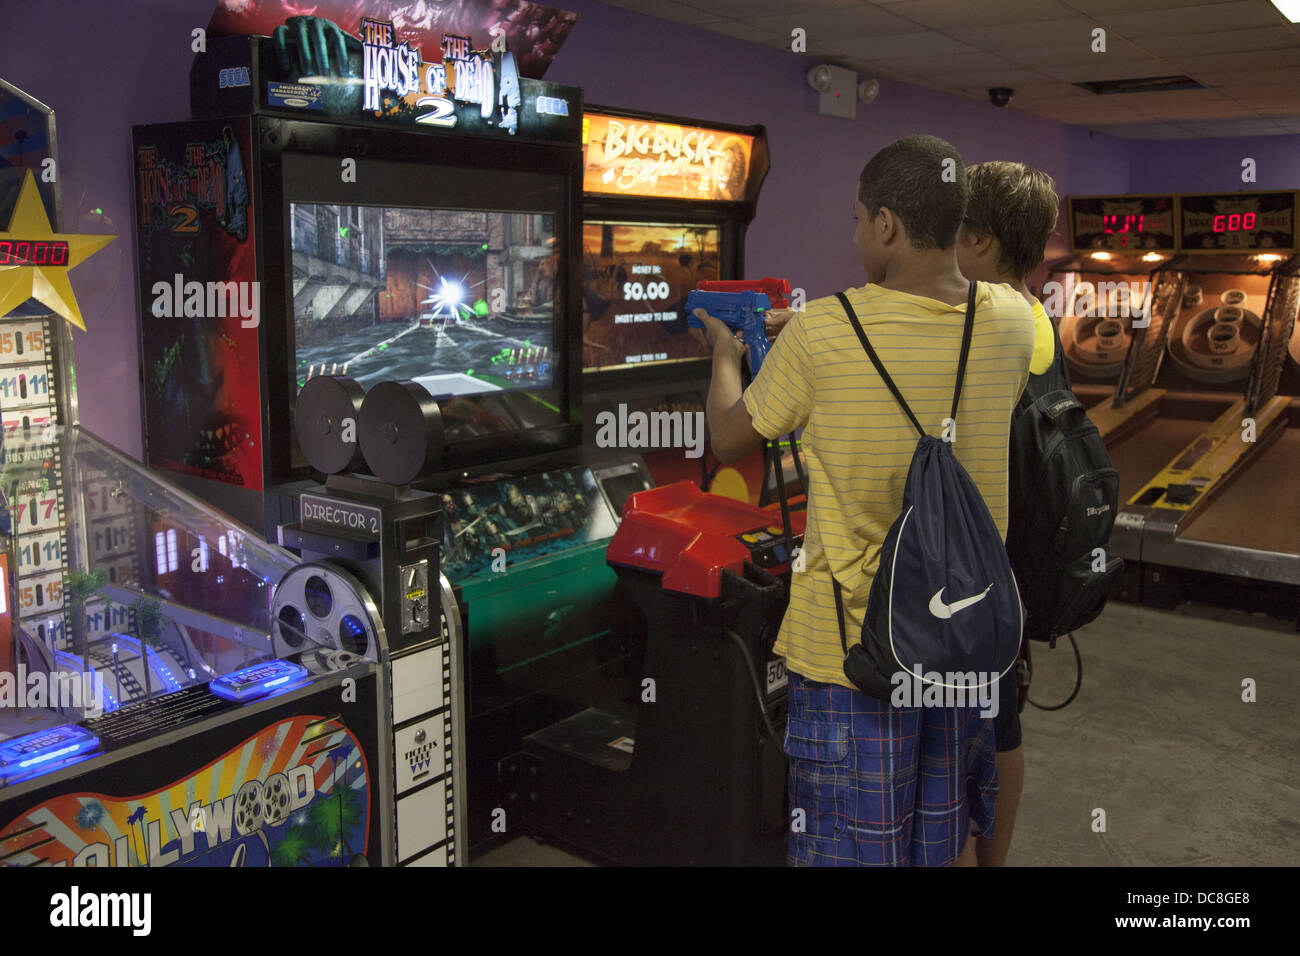 Kids always are in battle mode with the violent games at a video arcade in Coney Island, Brooklyn, NY. - Stock Image